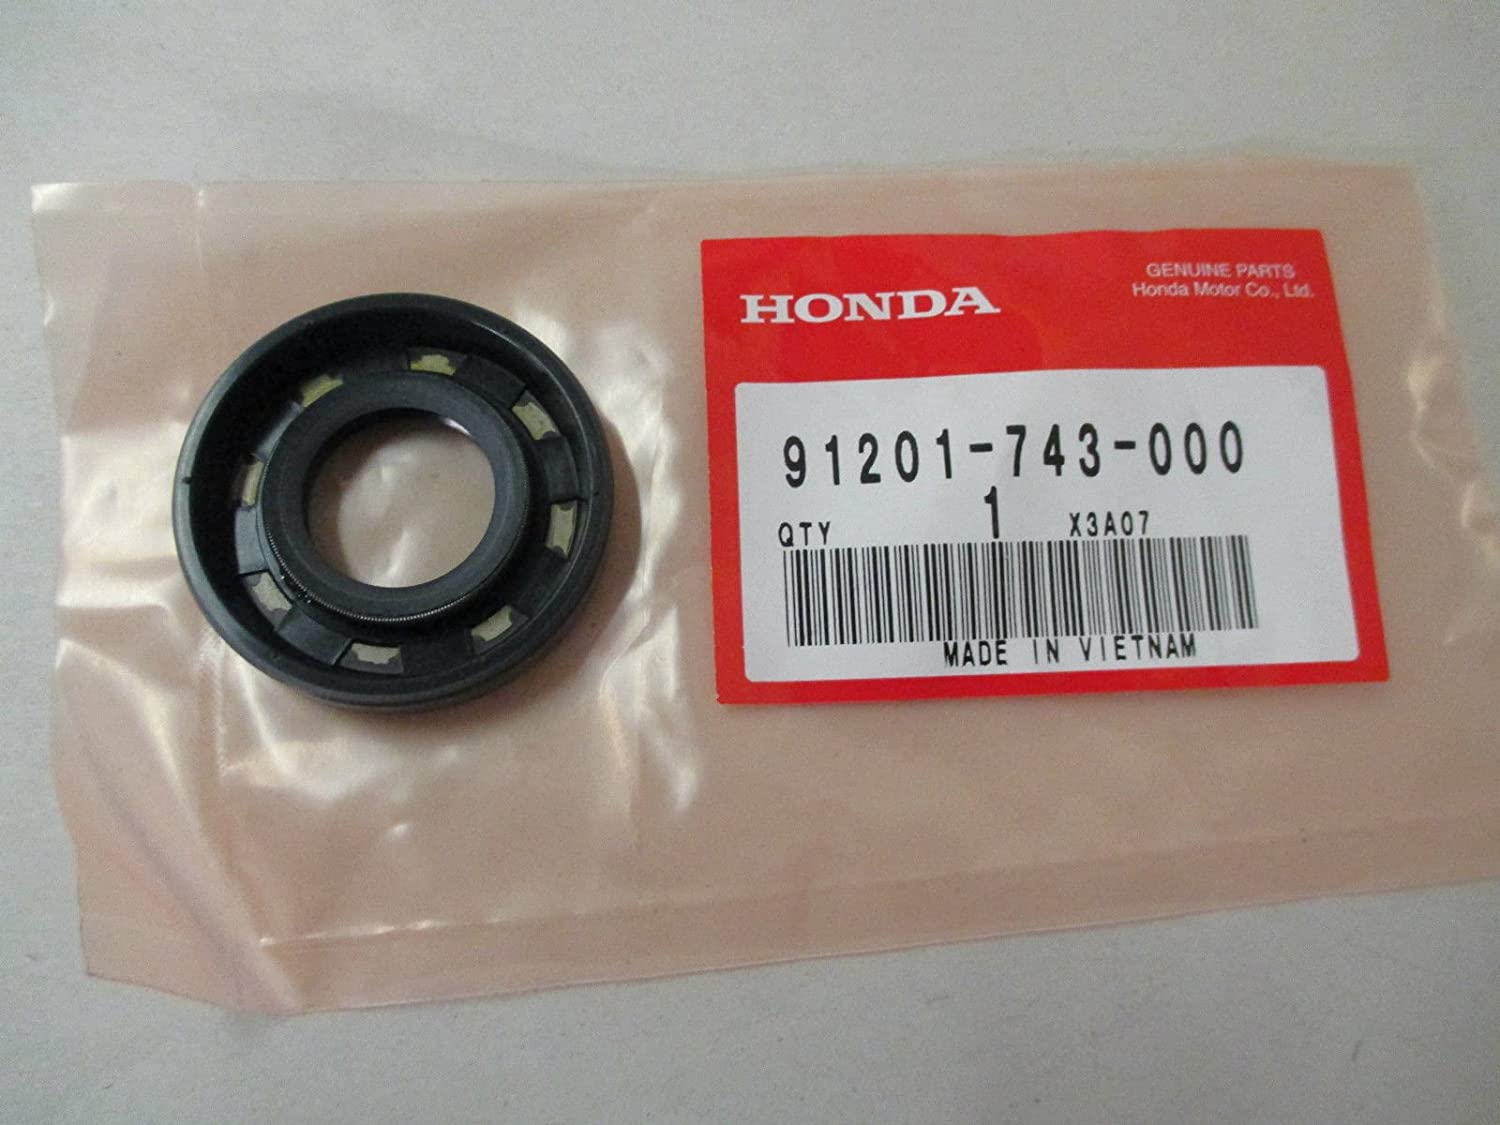 Honda 91201-743-000 Oil Seal (20X42X8)